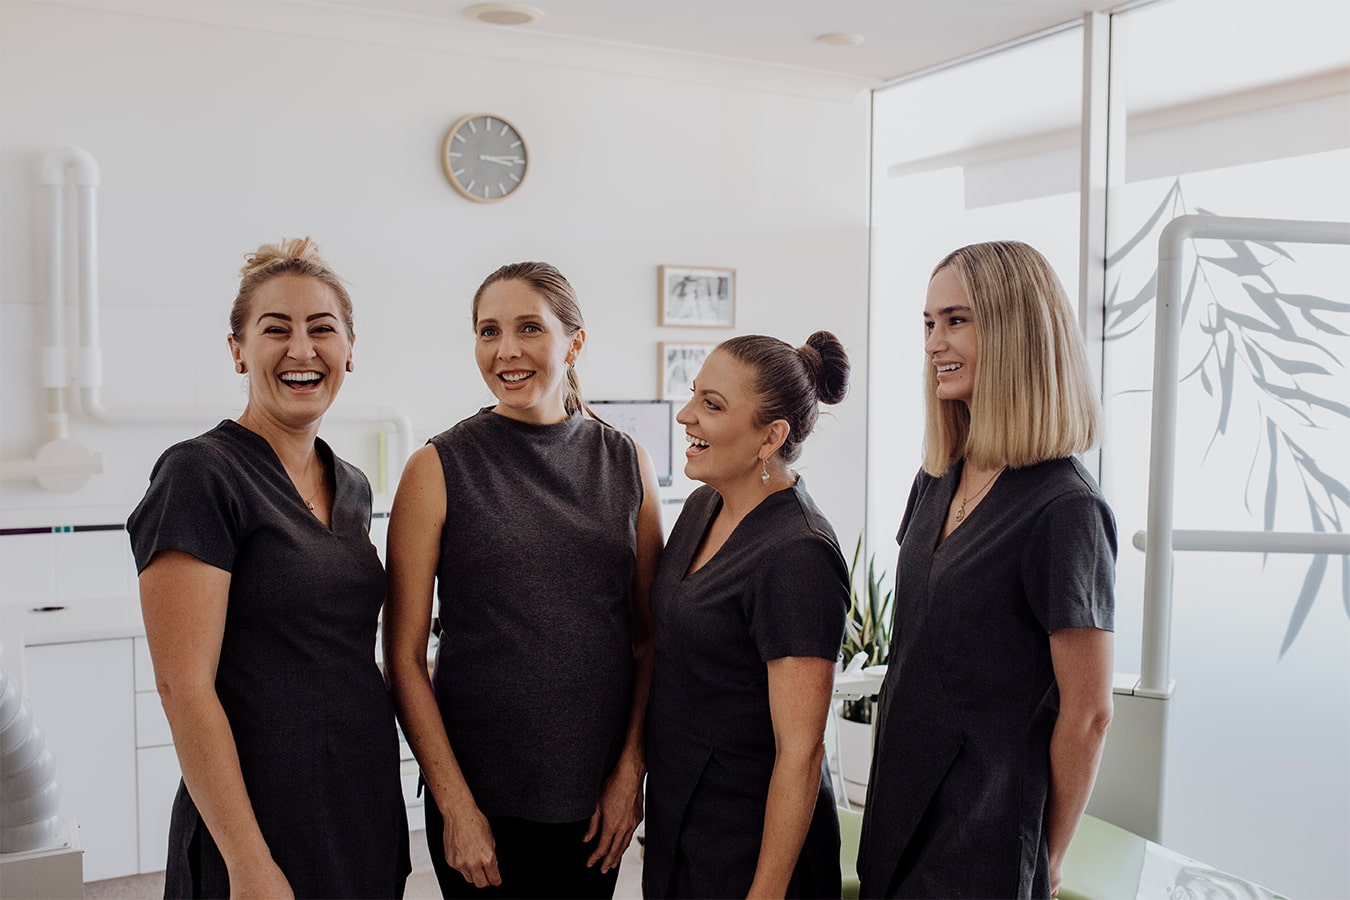 The friendly dental team at Smile by Design